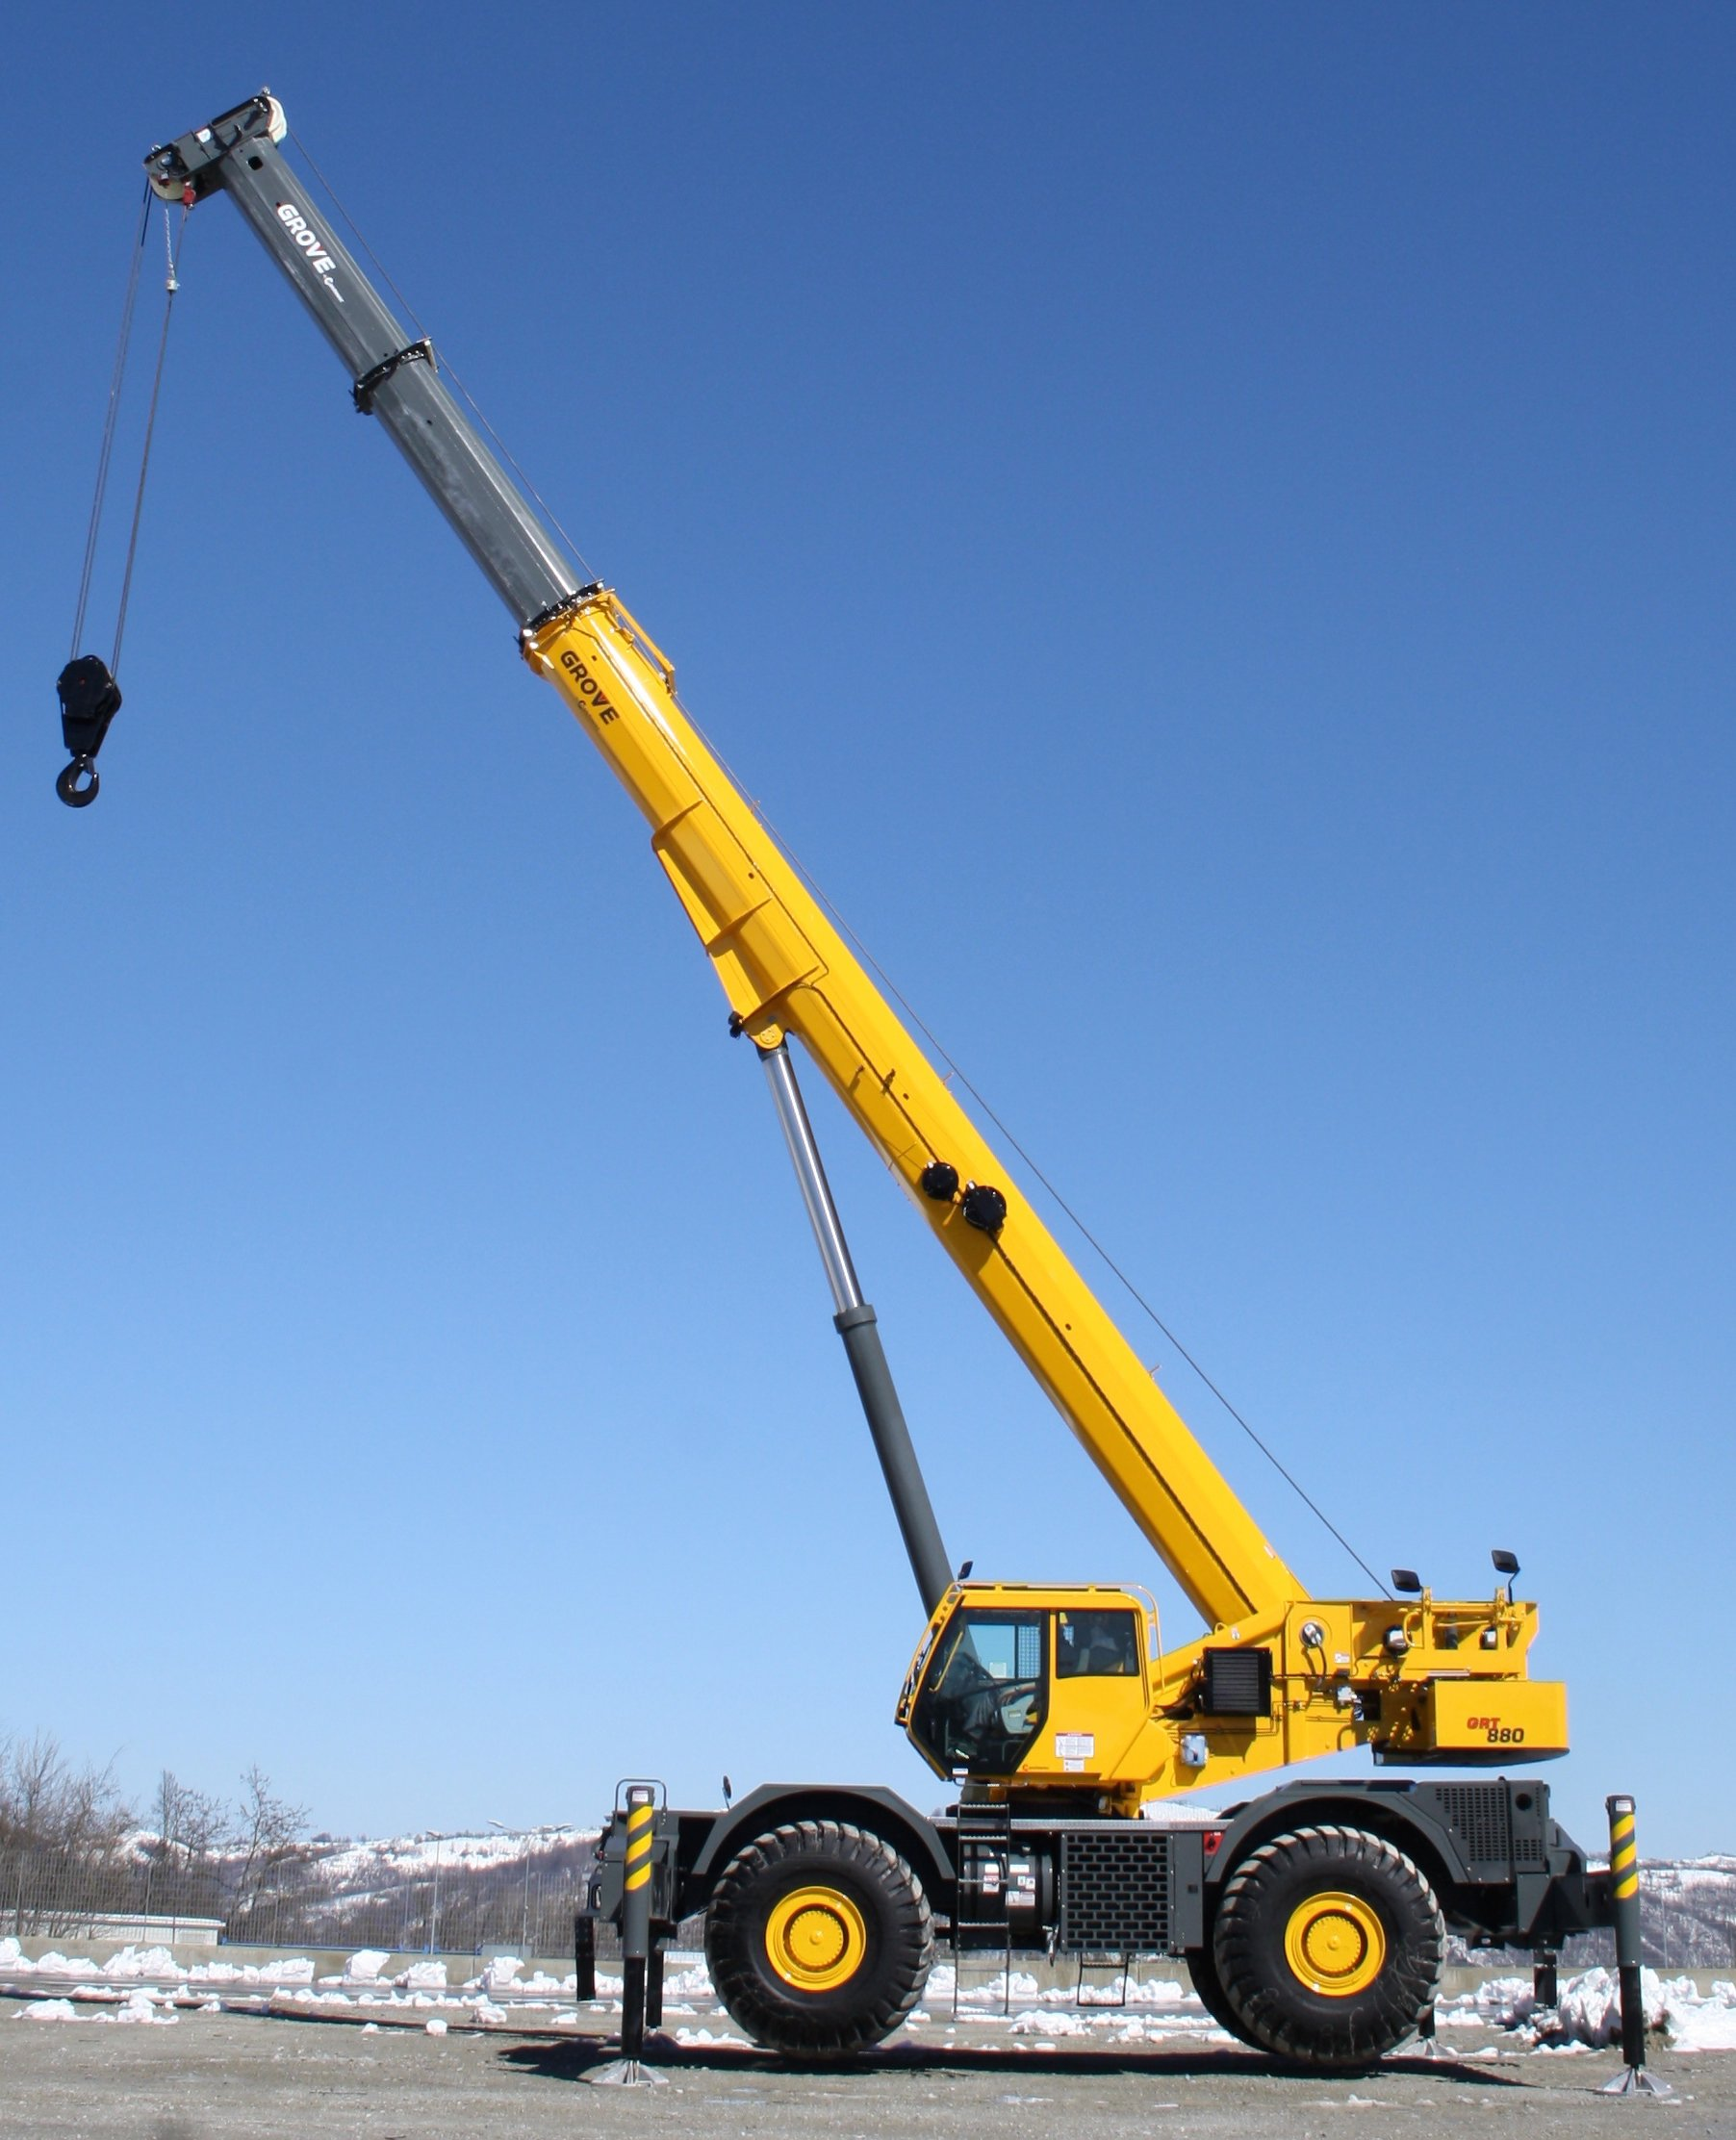 Grove Grt880 To Be Shown For First Time In North America